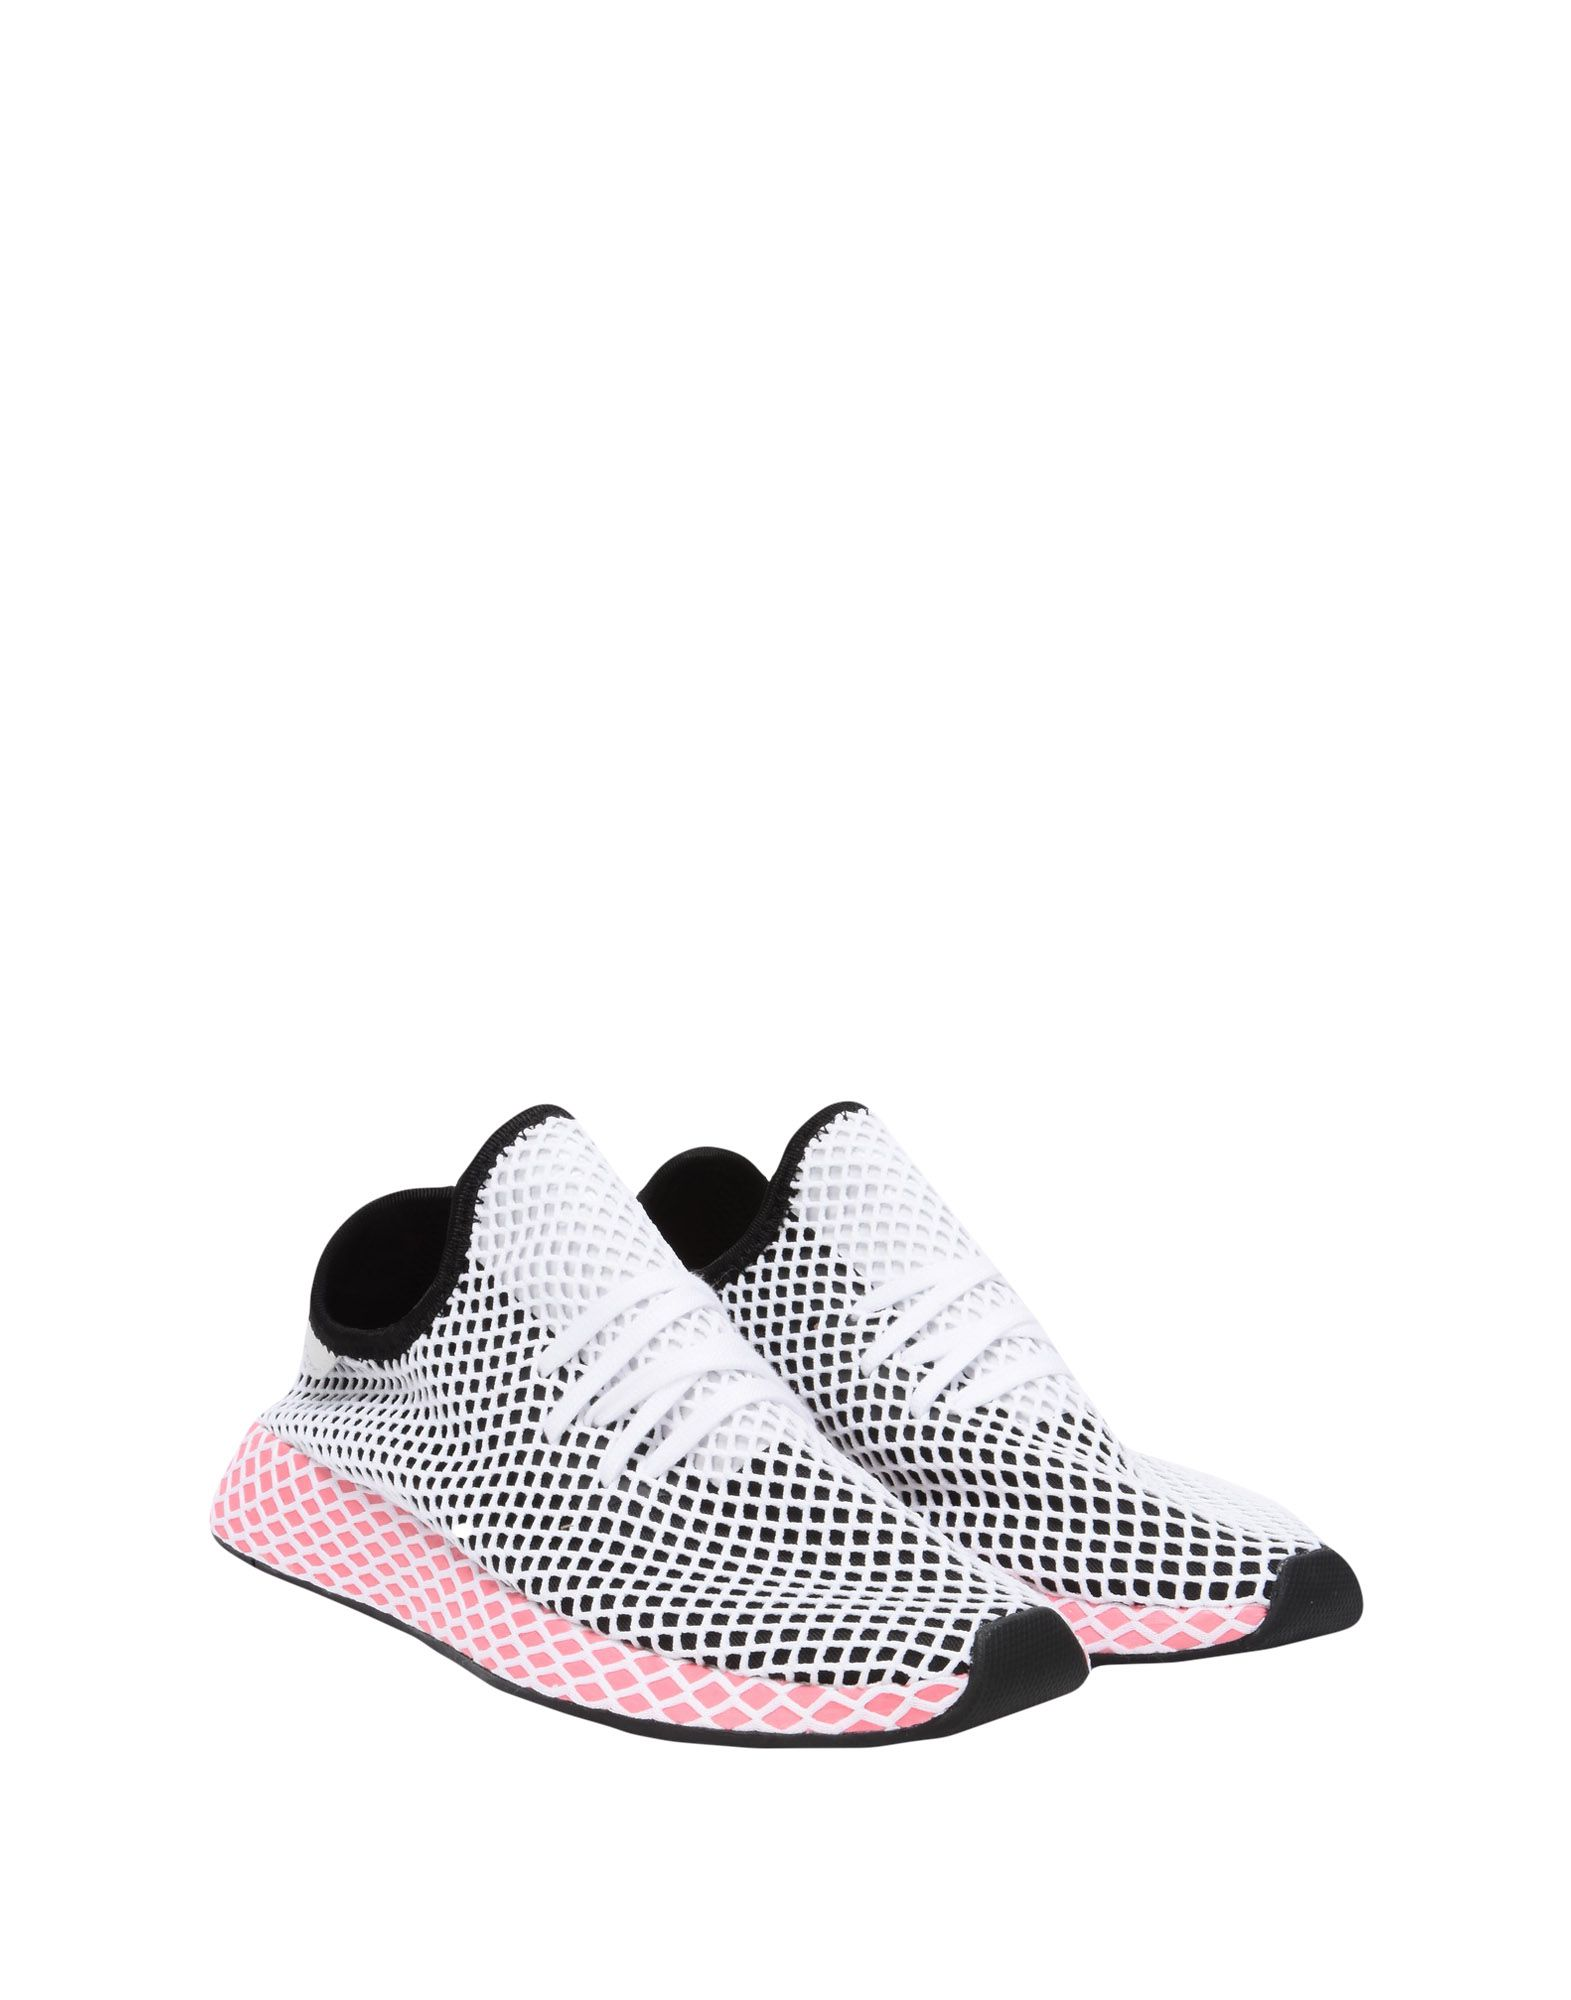 Gut um billige W Schuhe zu tragenAdidas Originals Deerupt Runner W billige  11459248ML 0b226a